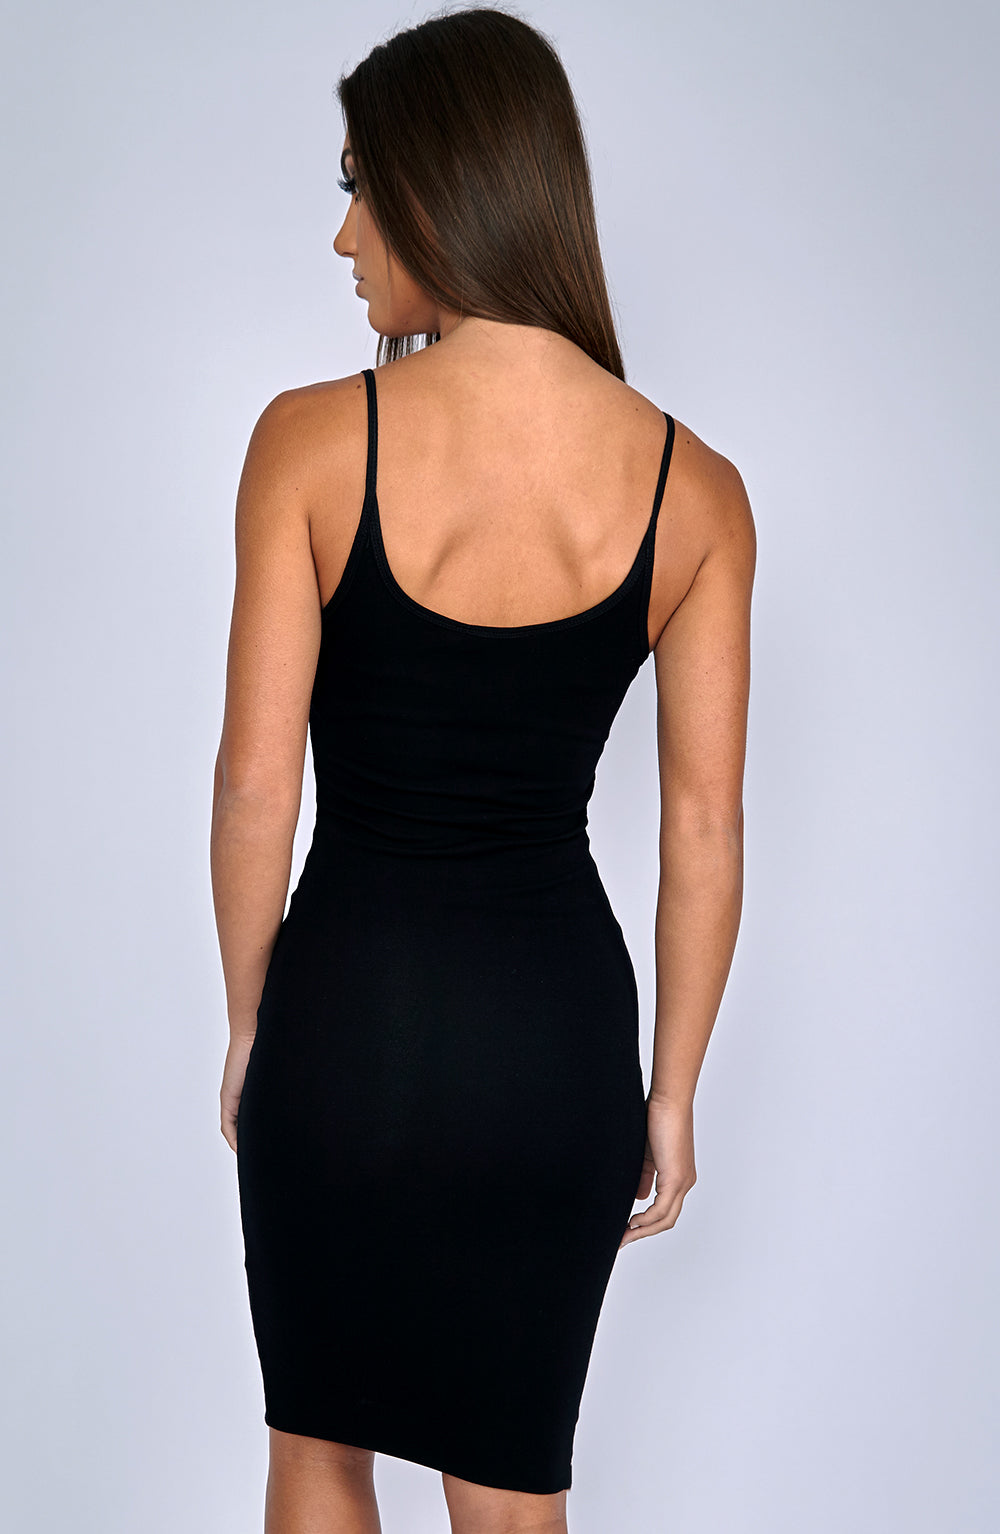 Zaphire Dress - Black